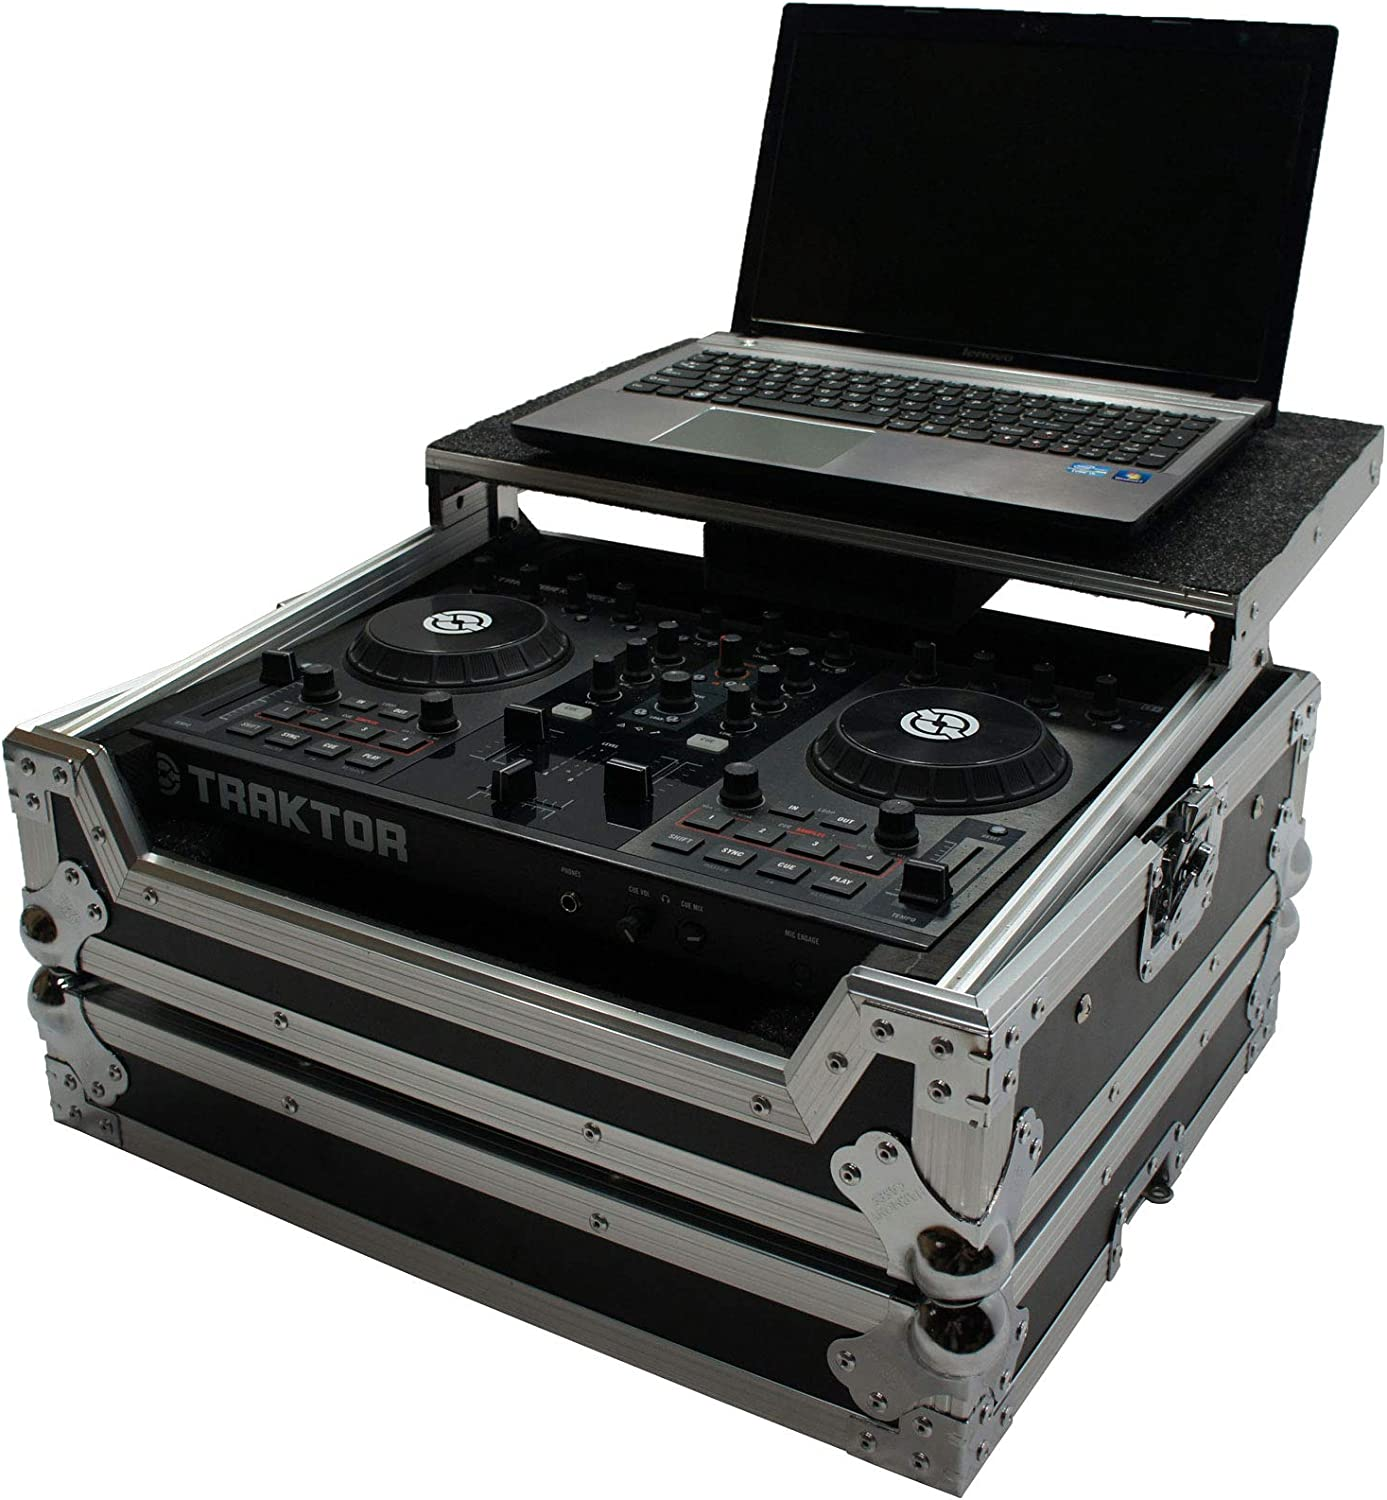 Harmony HCTKS2LT Flight Glide Laptop Compatibl Case Luxury Stand Custom Outlet ☆ Free Shipping